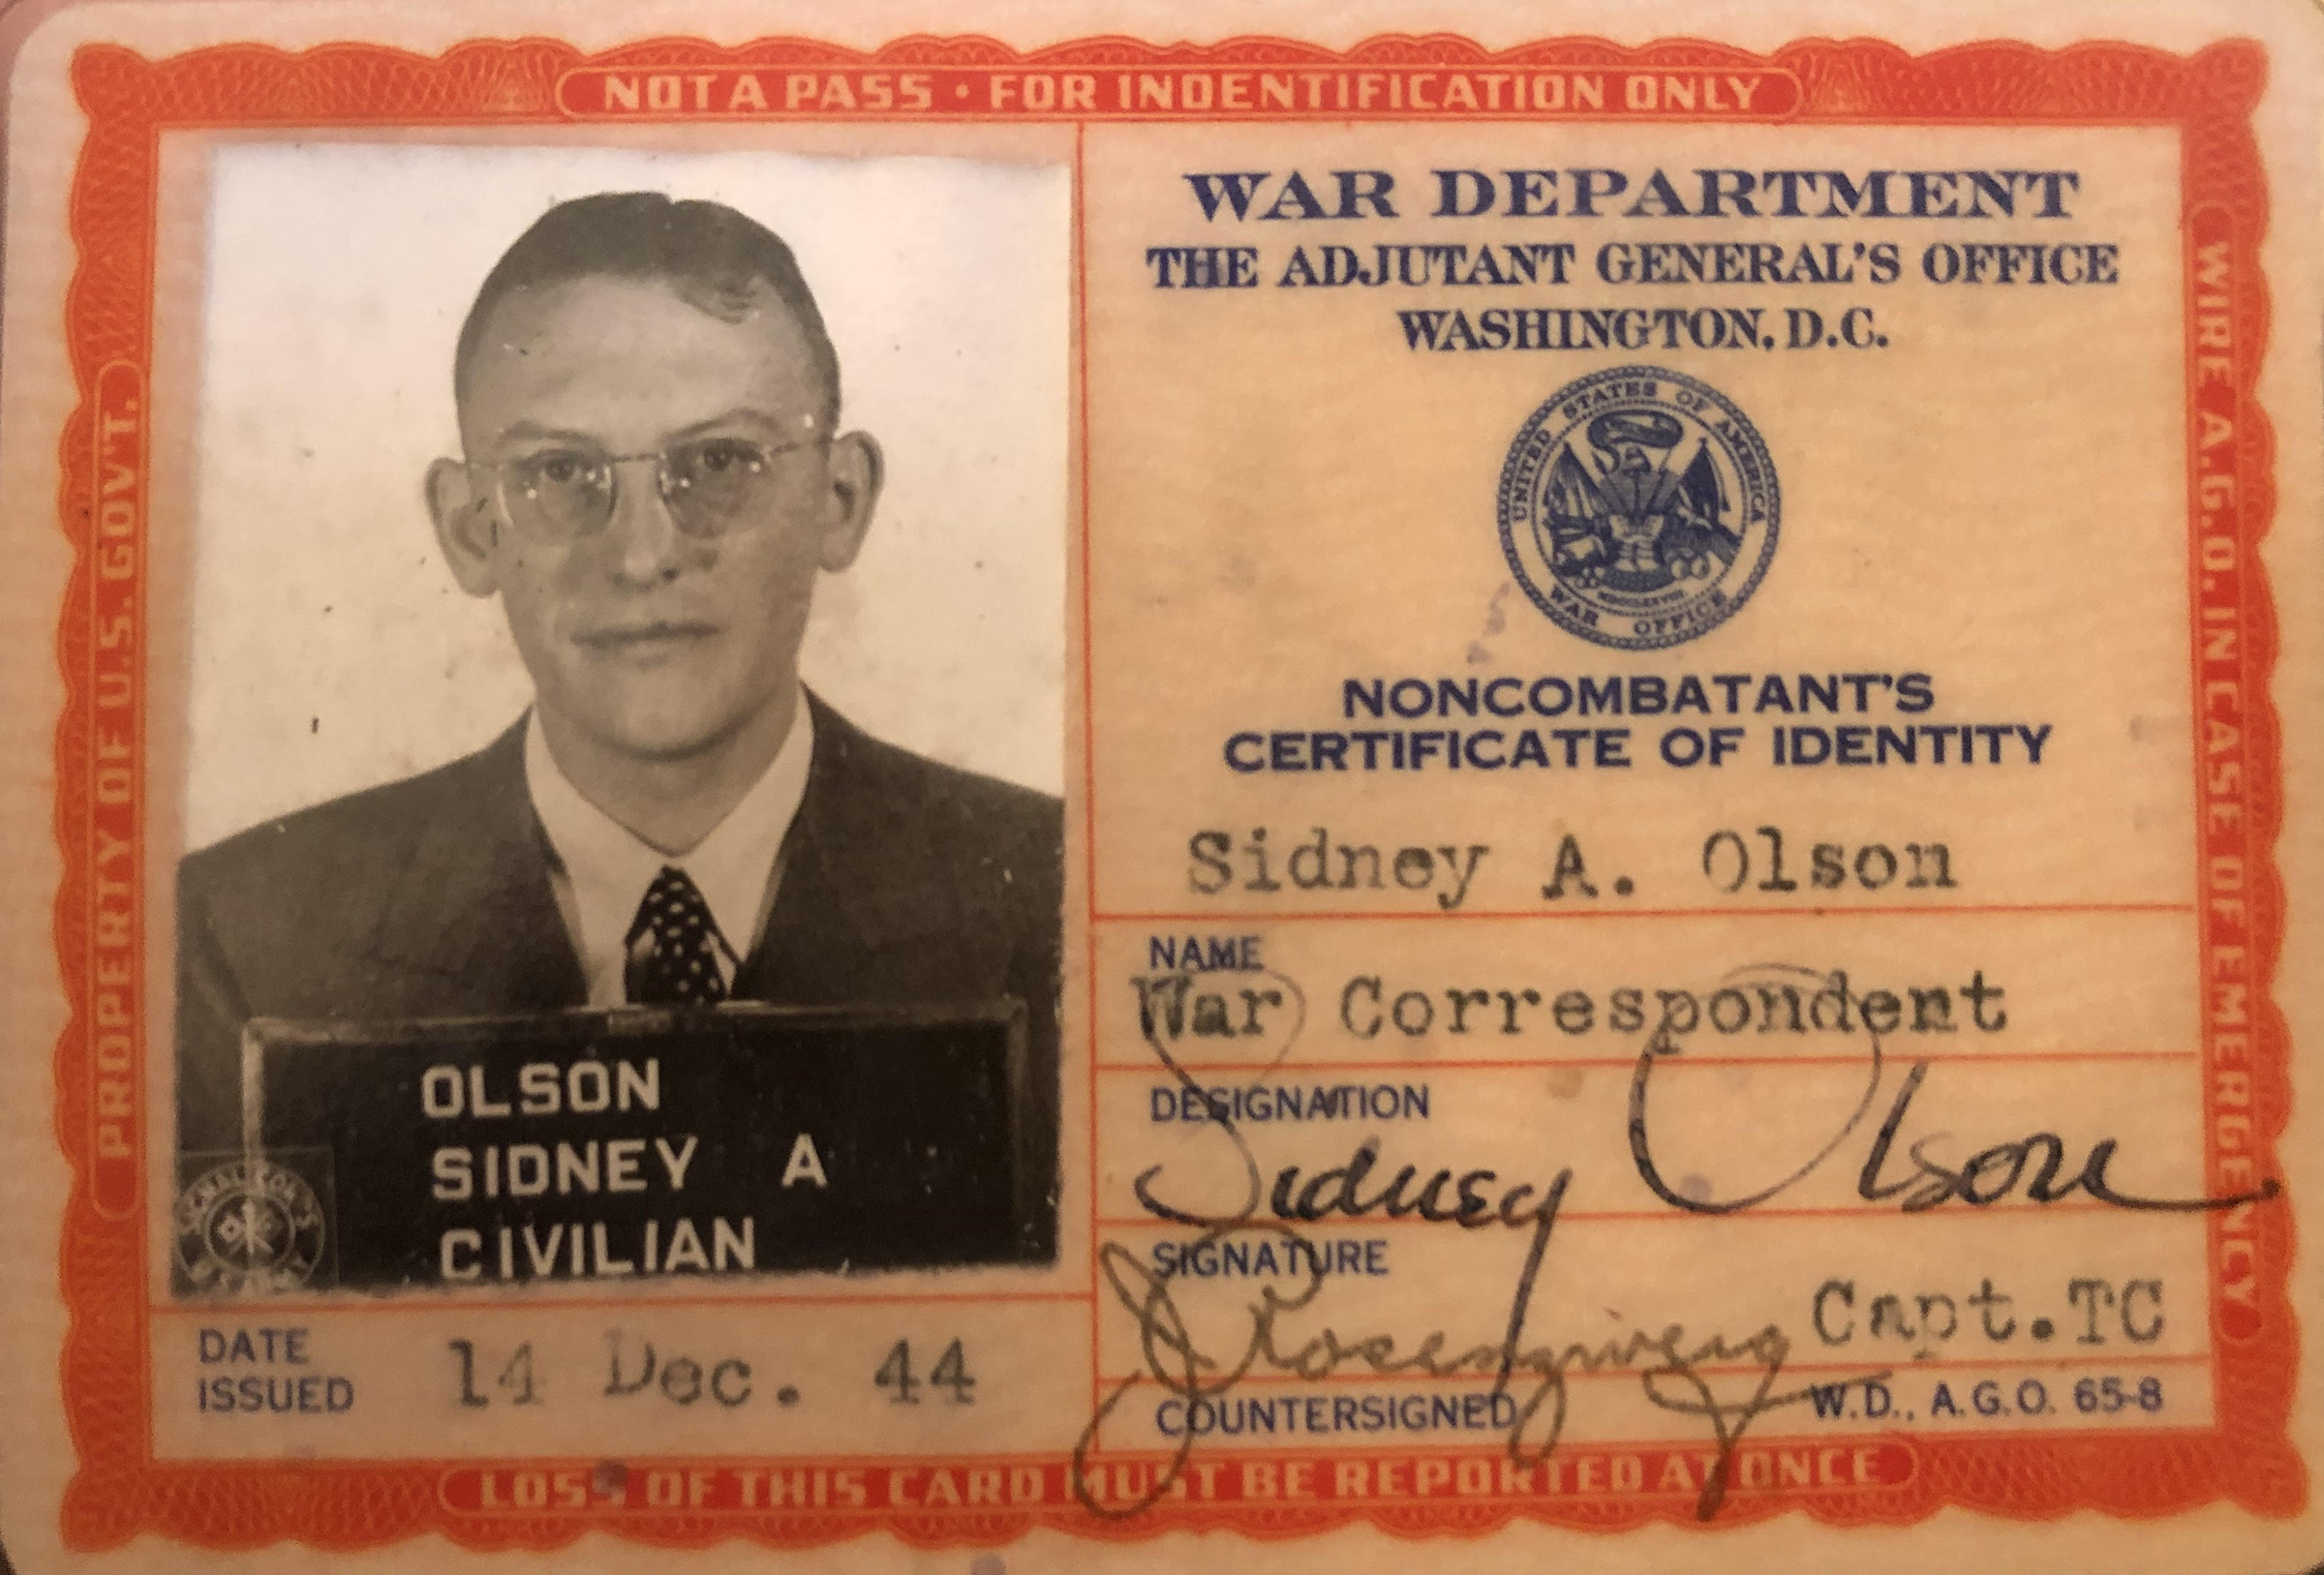 A noncombatant's certificate of identity issued to Sidney A. Olson designating him a war correspondent by the War Department on Dec. 14, 1944.